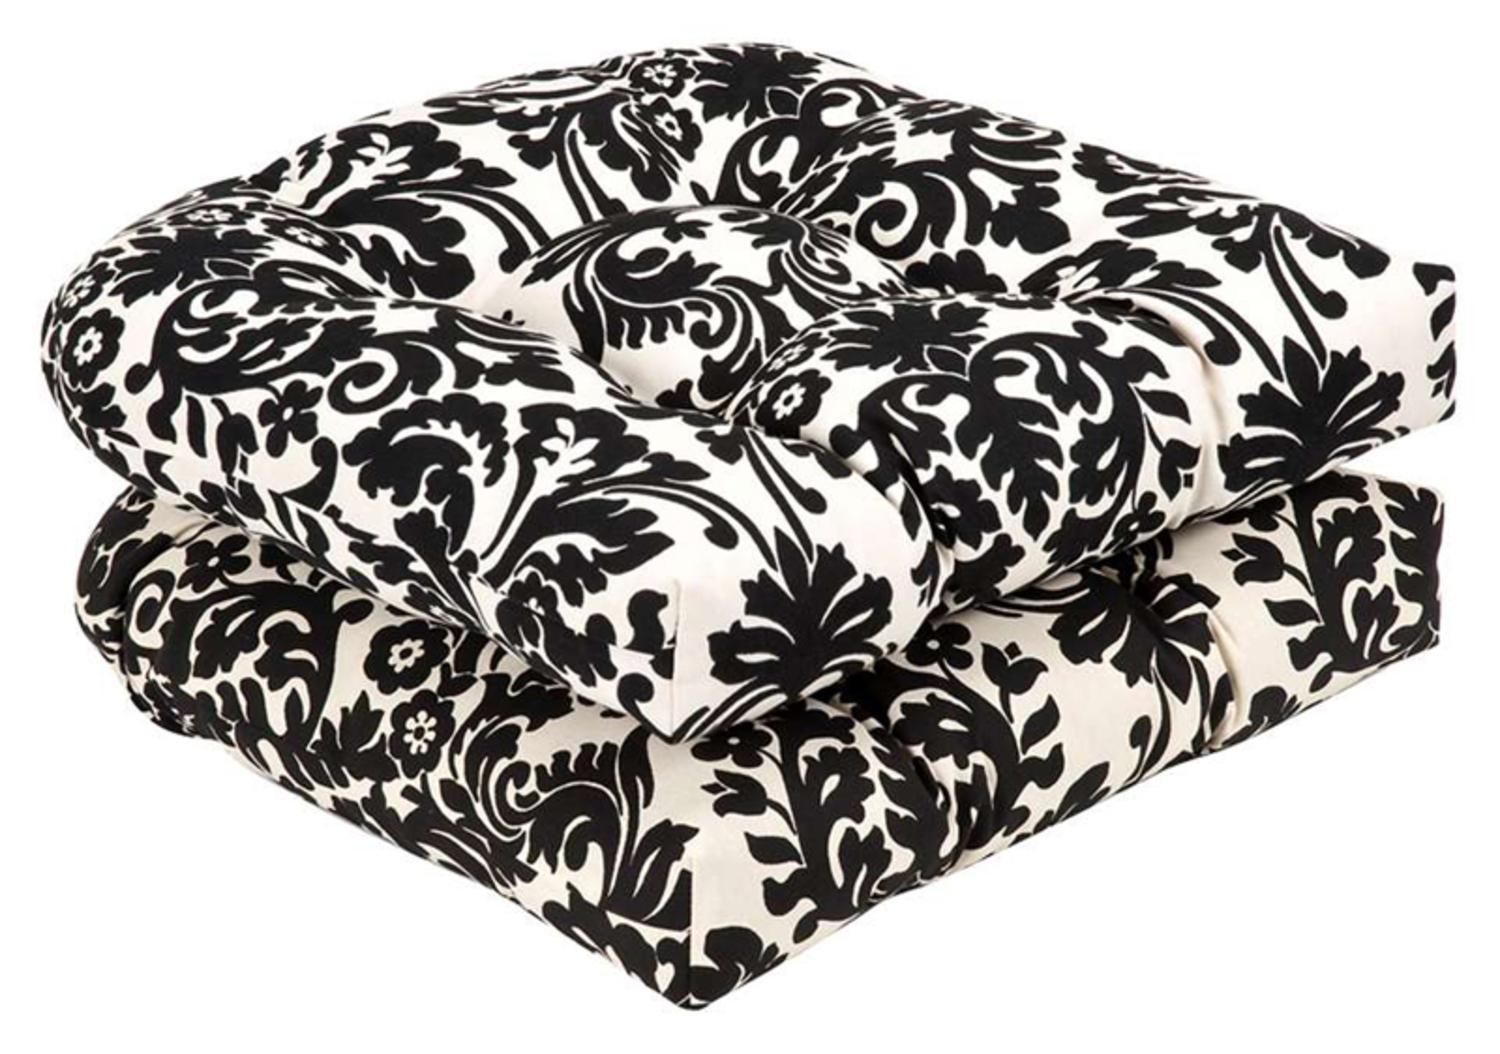 Pack Of 2 Outdoor Patio Furniture Wicker Chair Seat Cushions   Dramatic  Damask